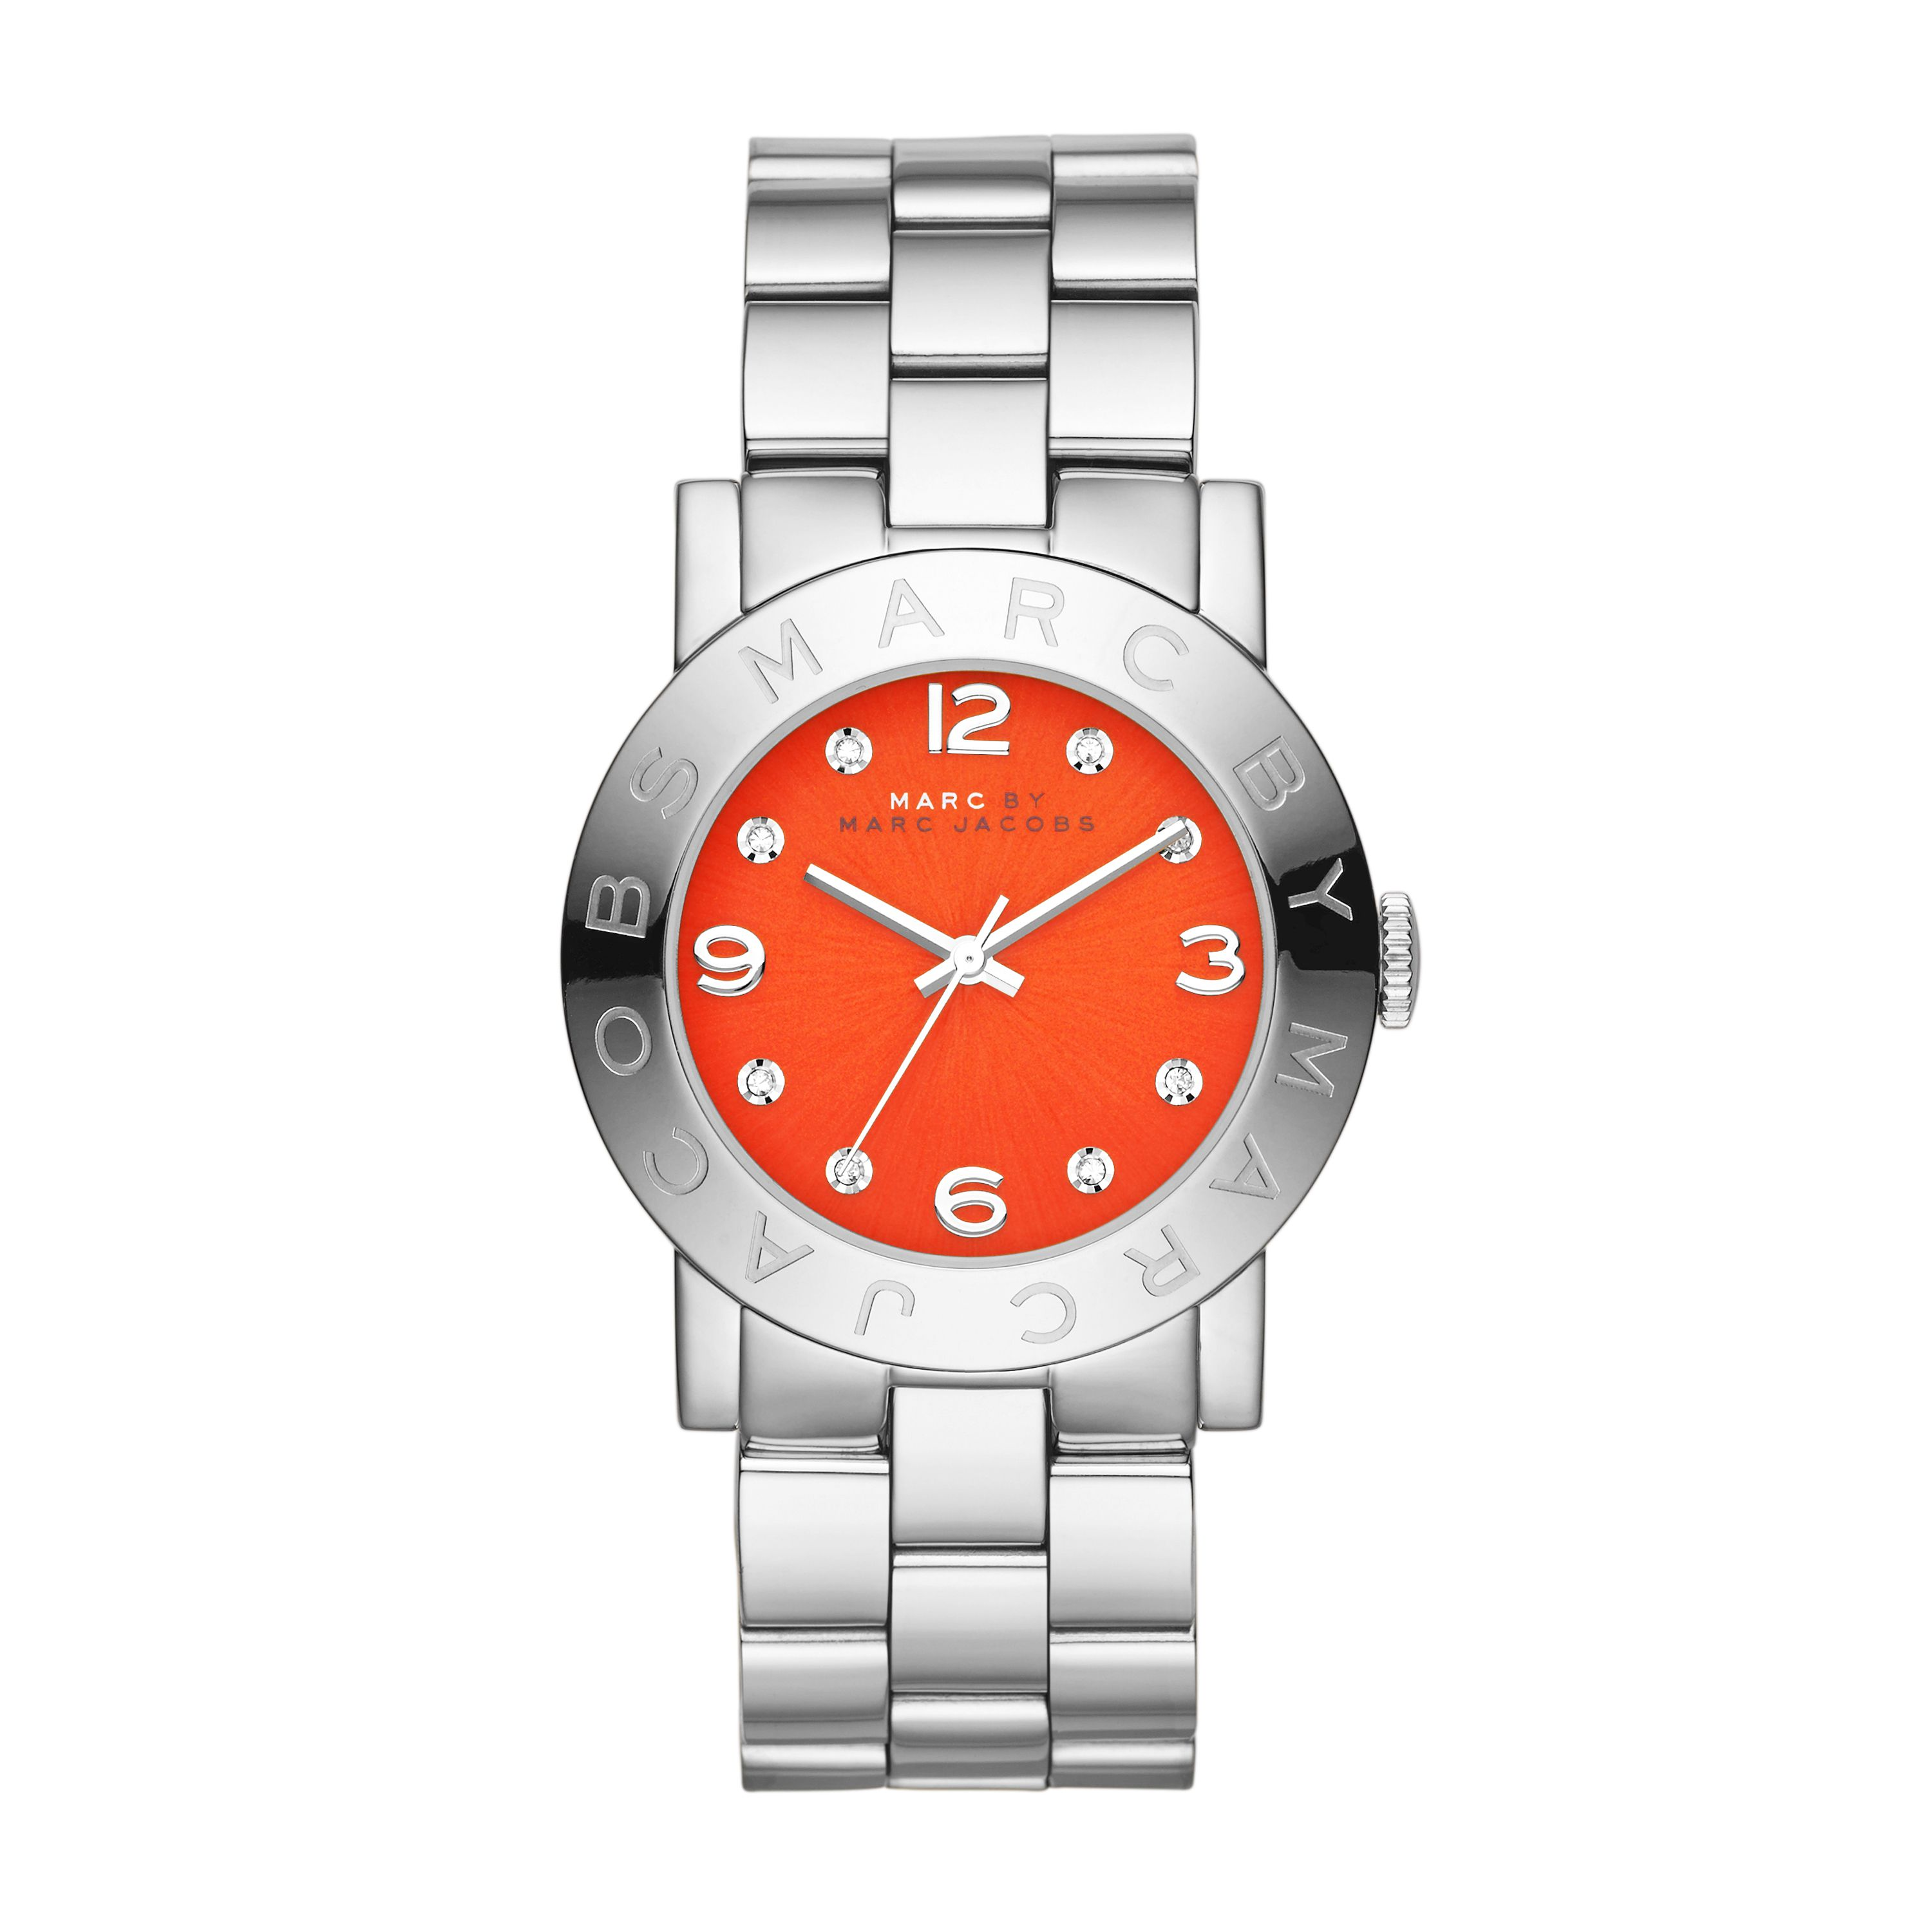 Mbm3302 amy ladies silver bracelet watch